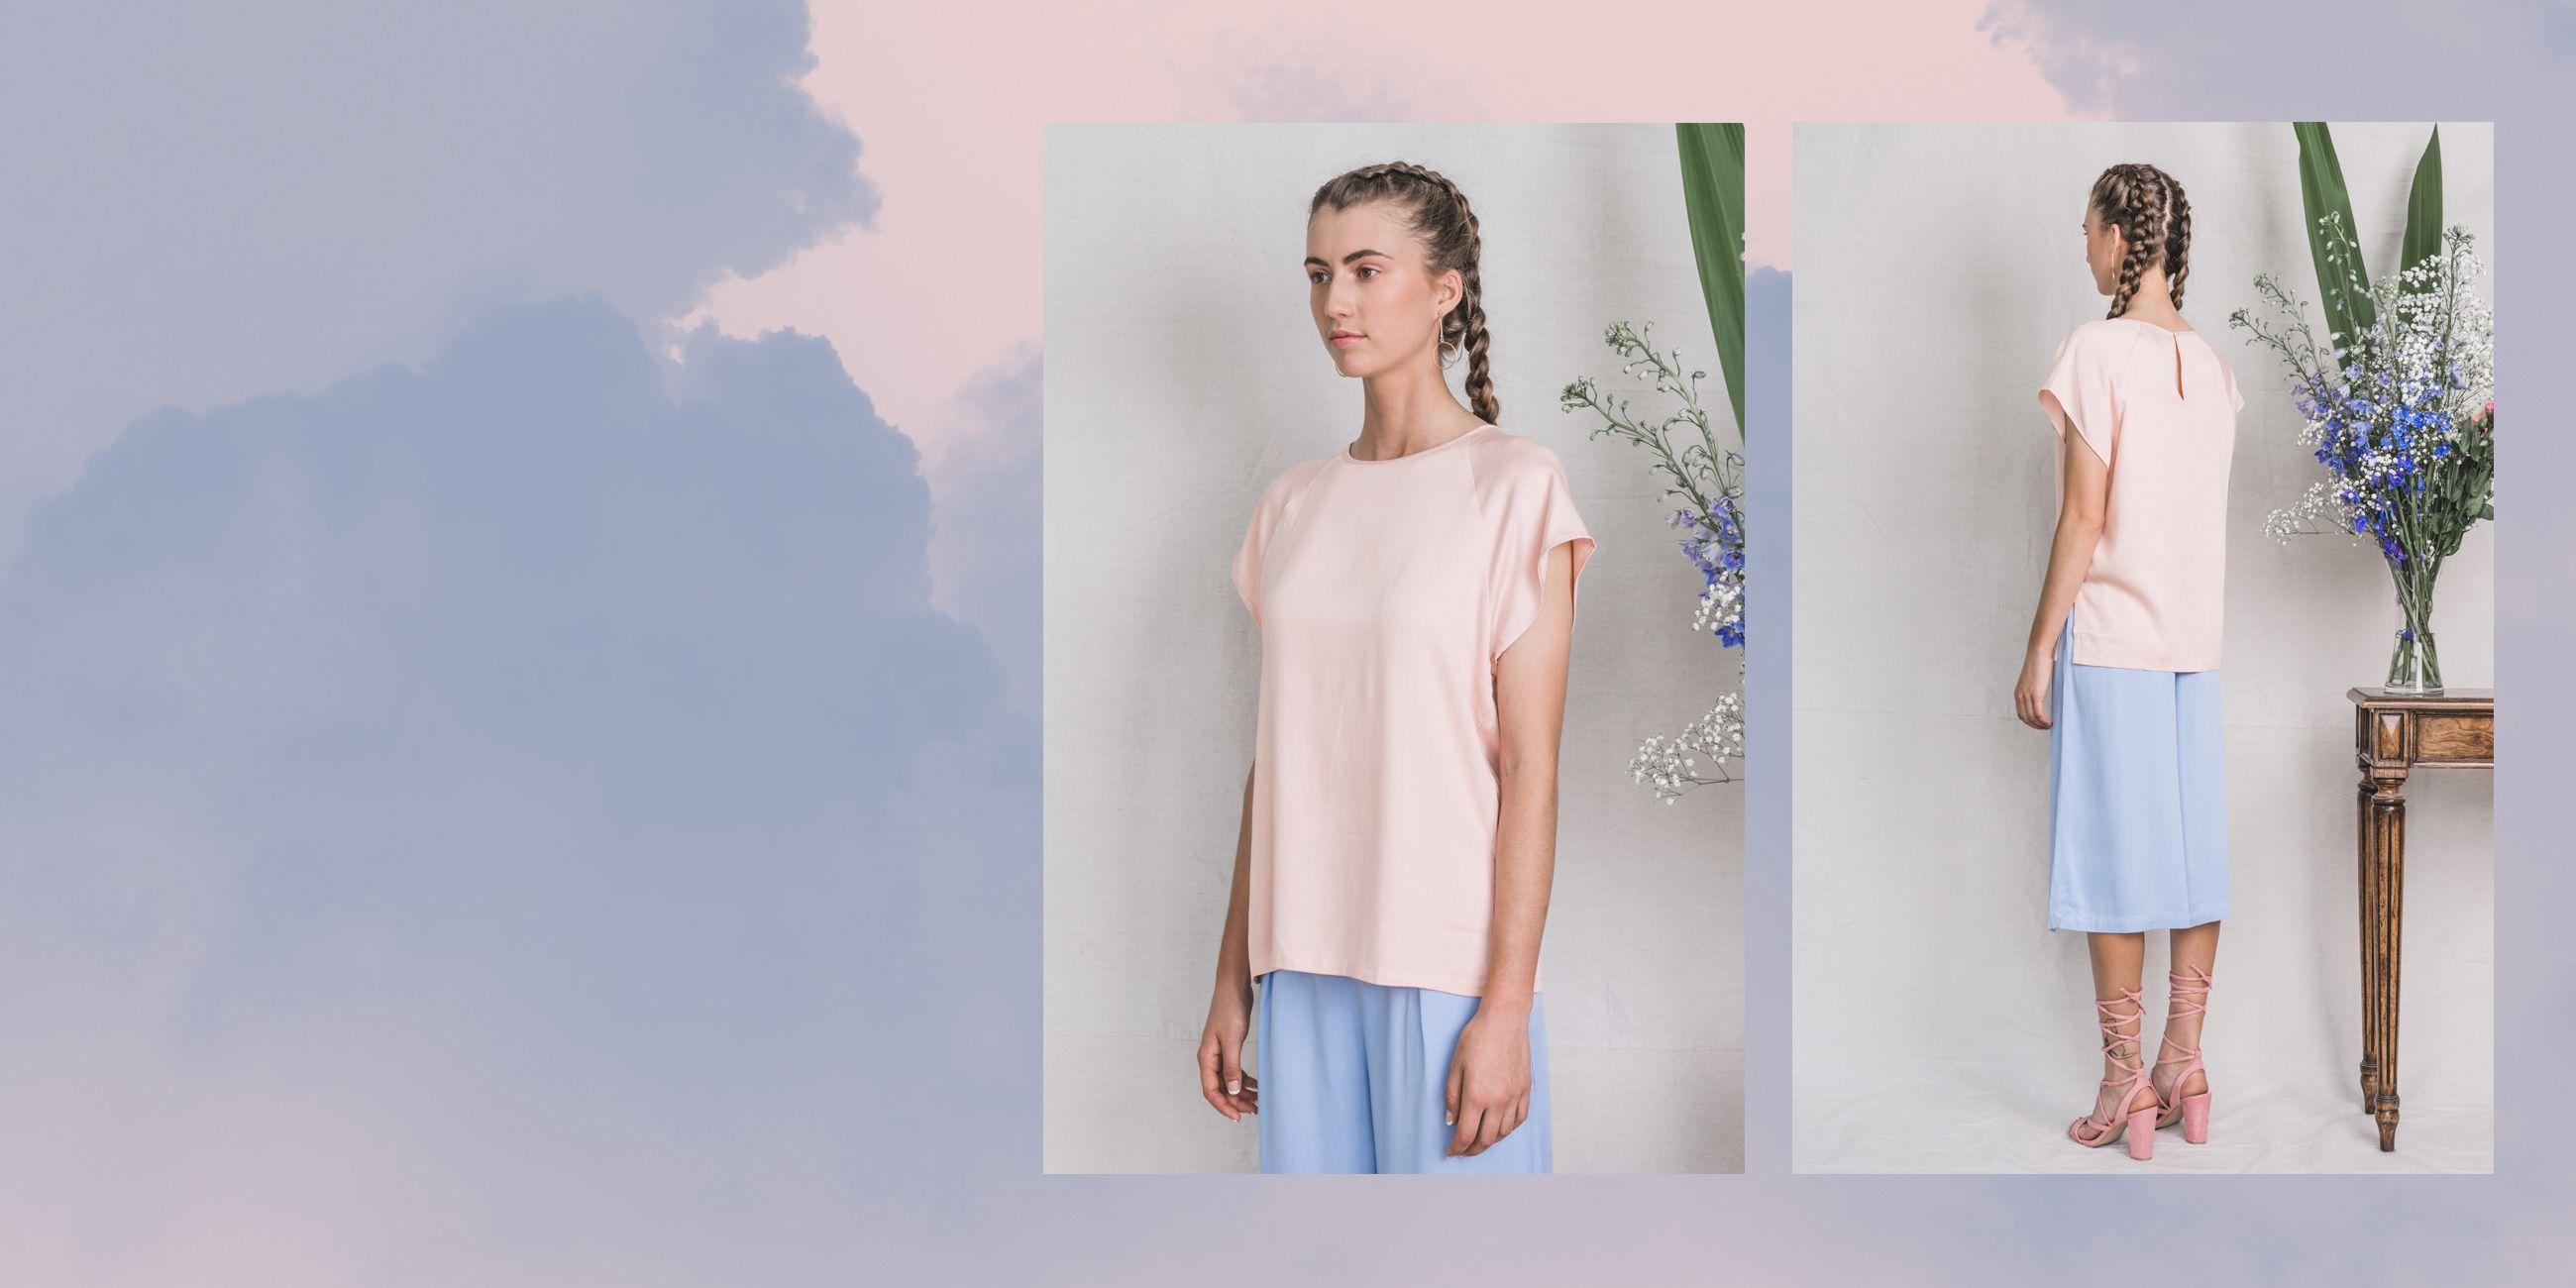 Altair Bamboo Top in Rose Quartz – The Great Beyond 3